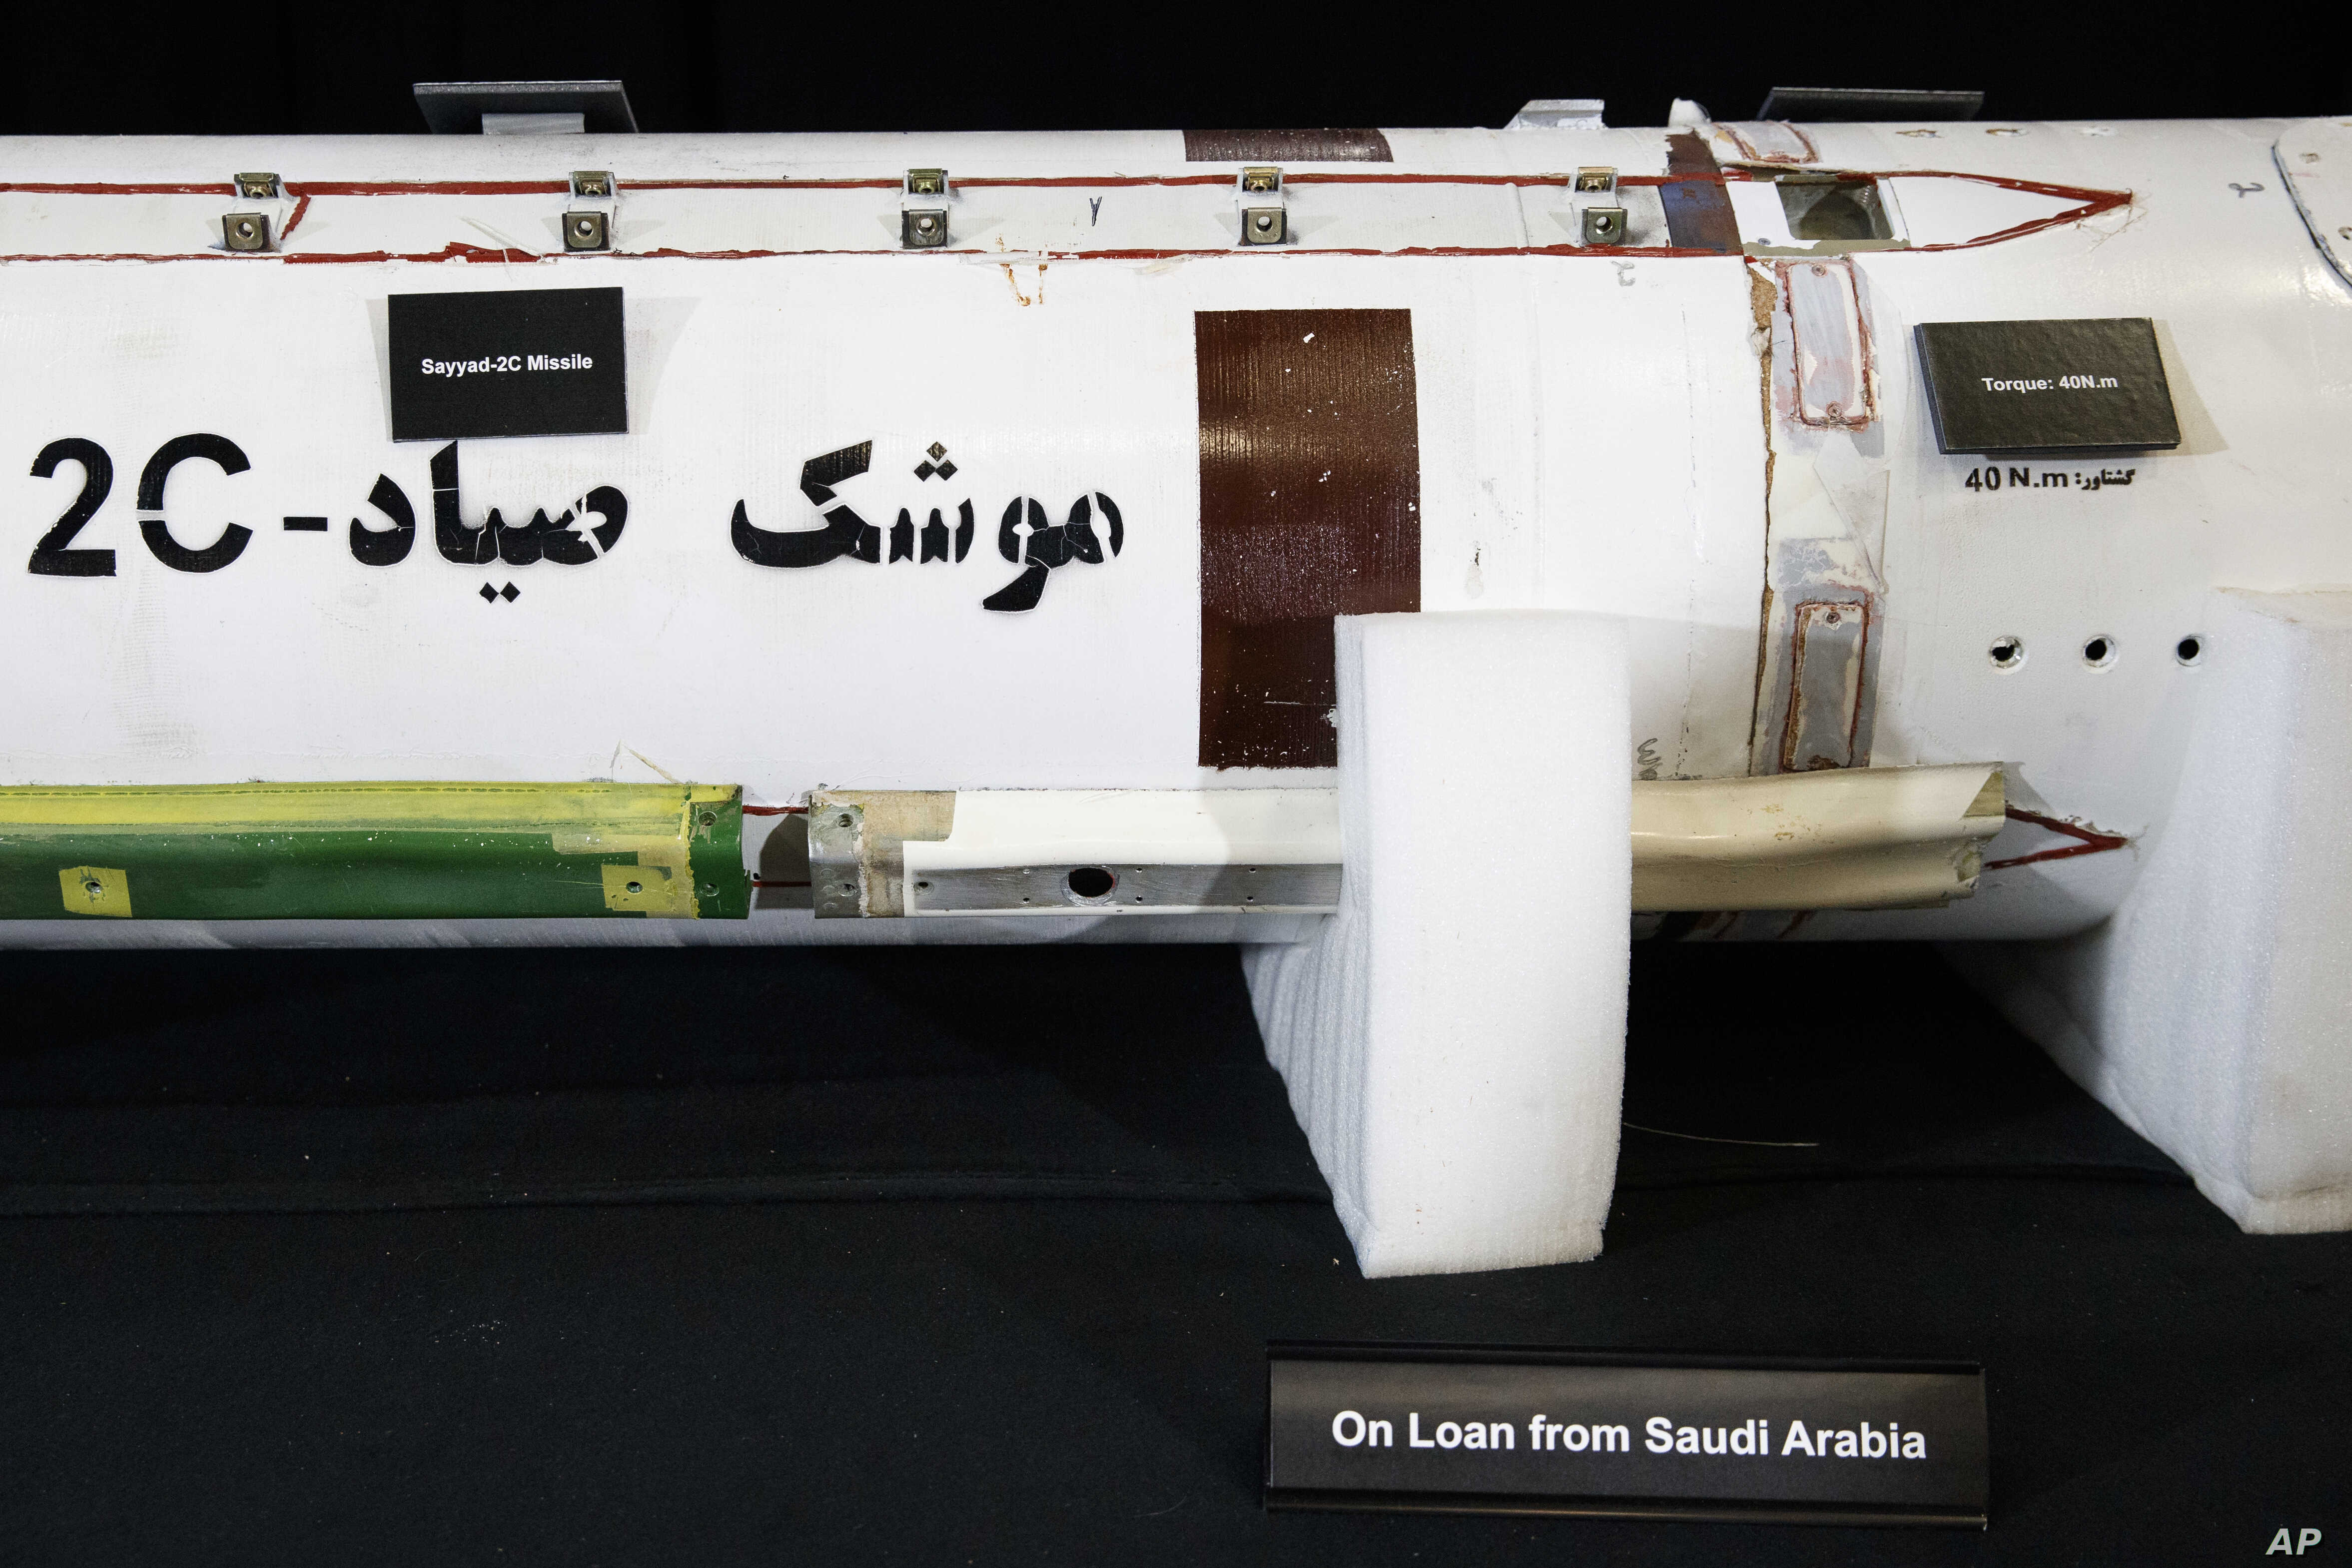 """Fragments of a  Surface to Air Missile (Sayyad 2C) is displayed with a sign that reads """"On Loan Form Saudi Arabia"""" at the Iranian Materiel Display (IMD) at Joint Base Anacostia-Bolling, in Washington, Nov. 29, 2018."""